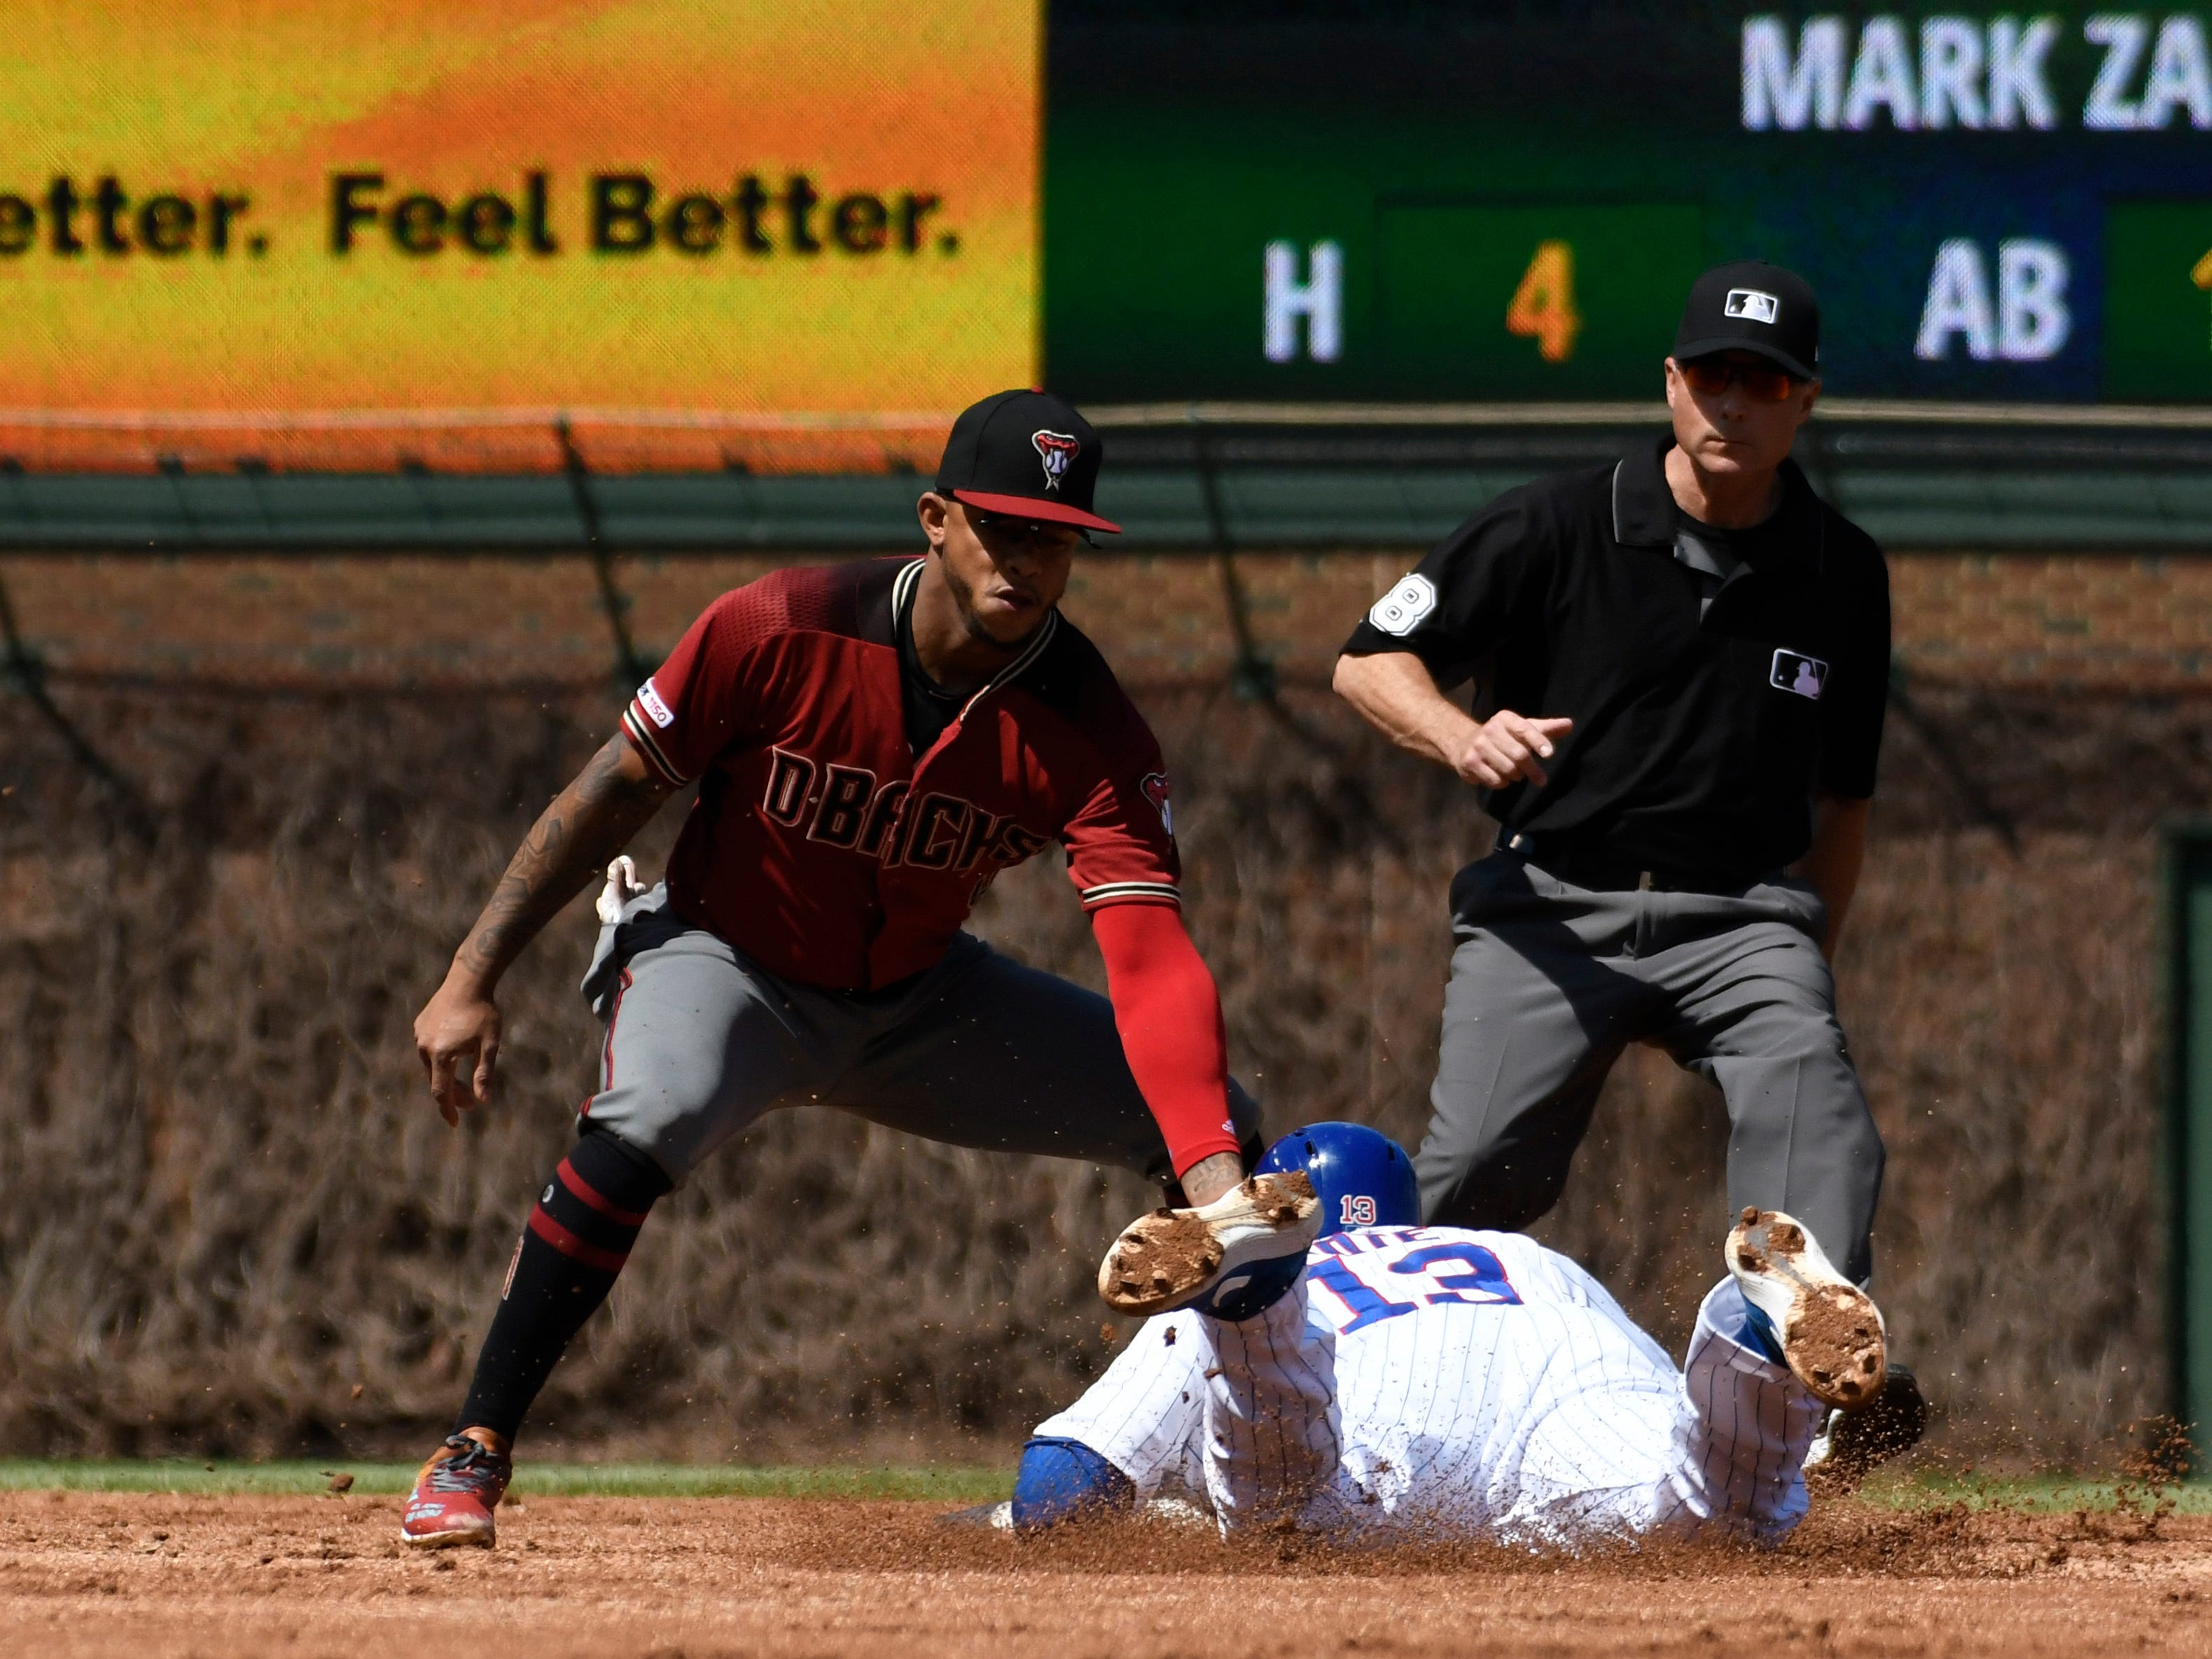 Diamondbacks shortstop Ketel Marte tags out Cubs third baseman David Bote as he attempted to steal second base during the second inning of a game April 21 at Wrigley Field.